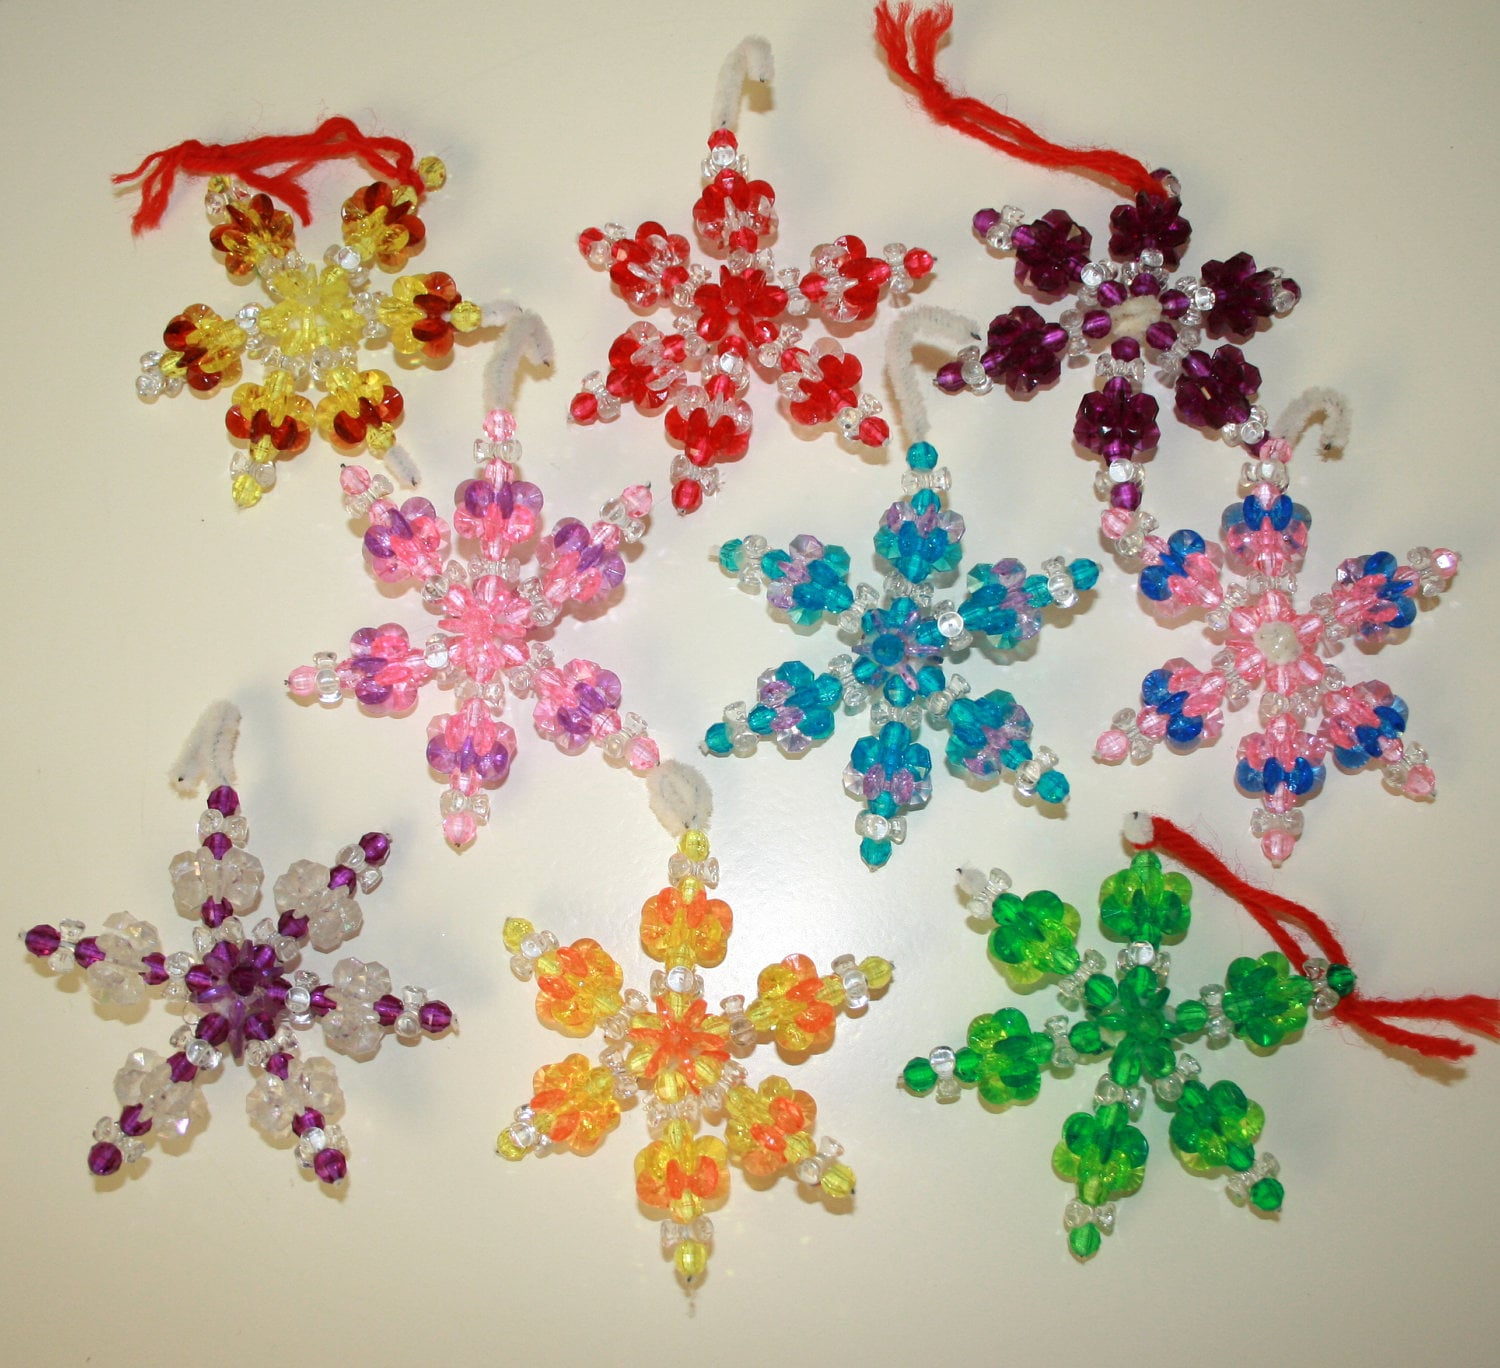 Surprising Christmas Decorations Made Of Beads Crafthubs Easy Diy Christmas Decorations Tissureus